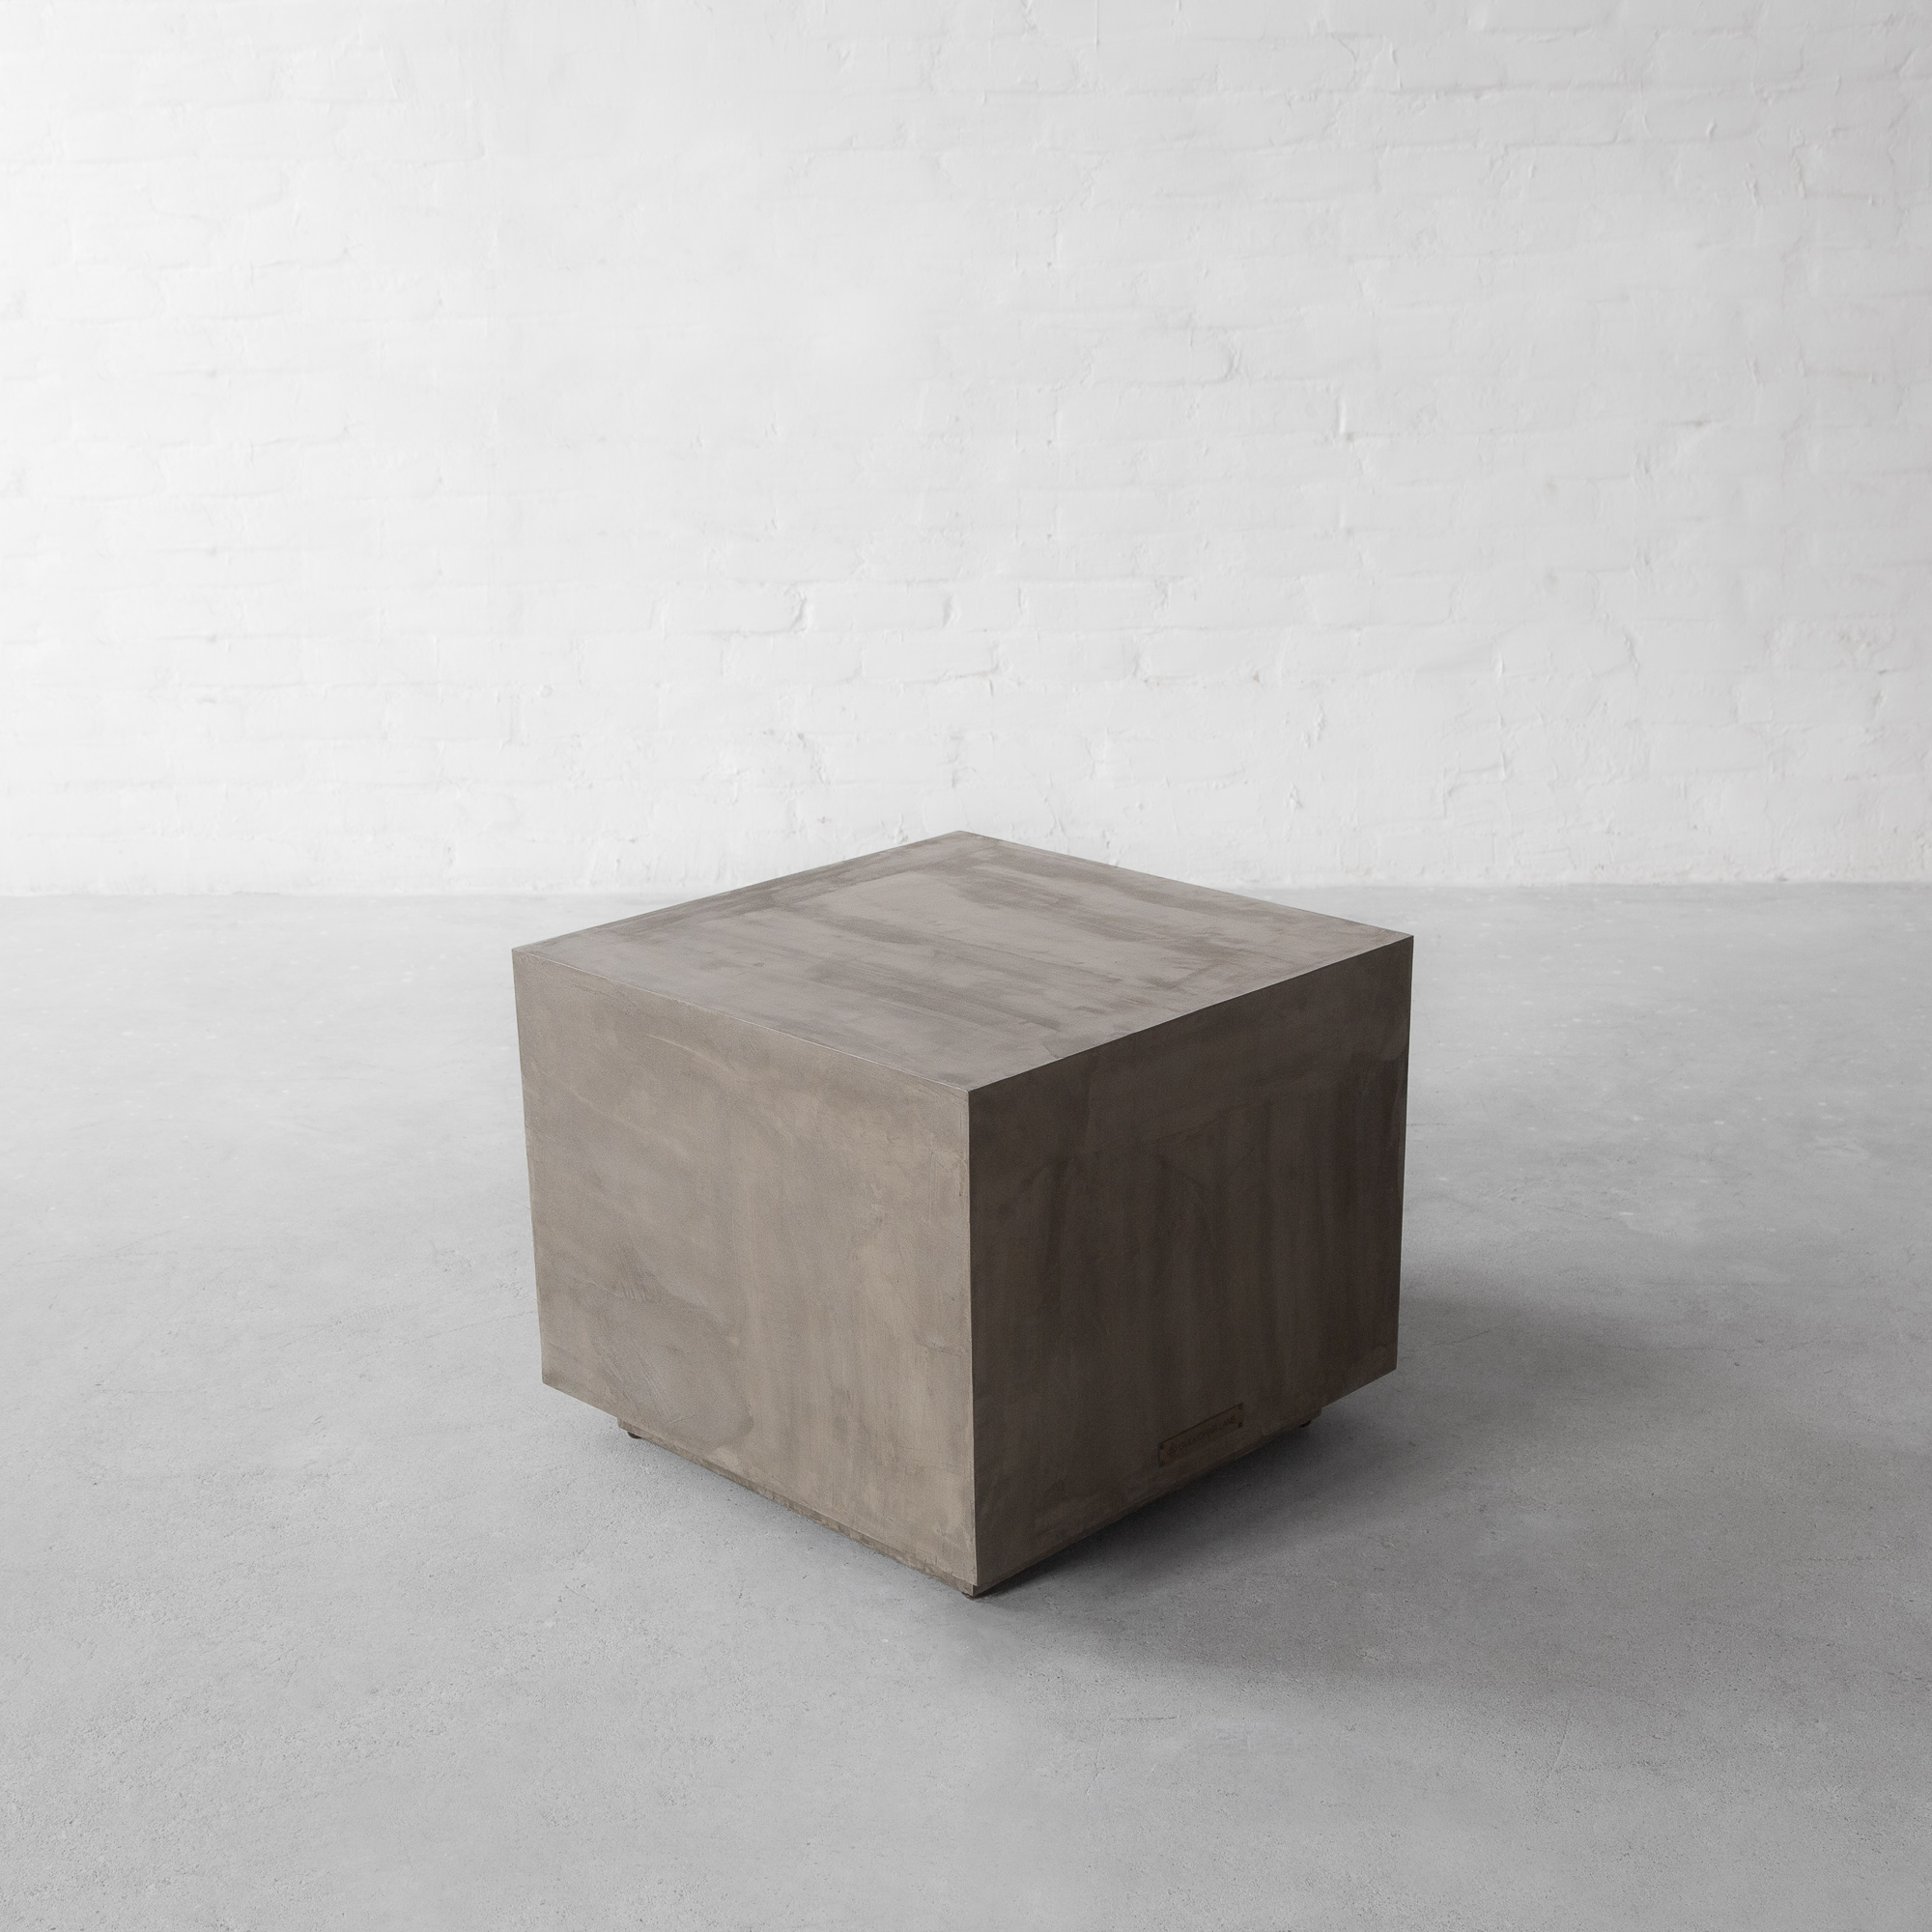 Concrete Island: Block Side Table